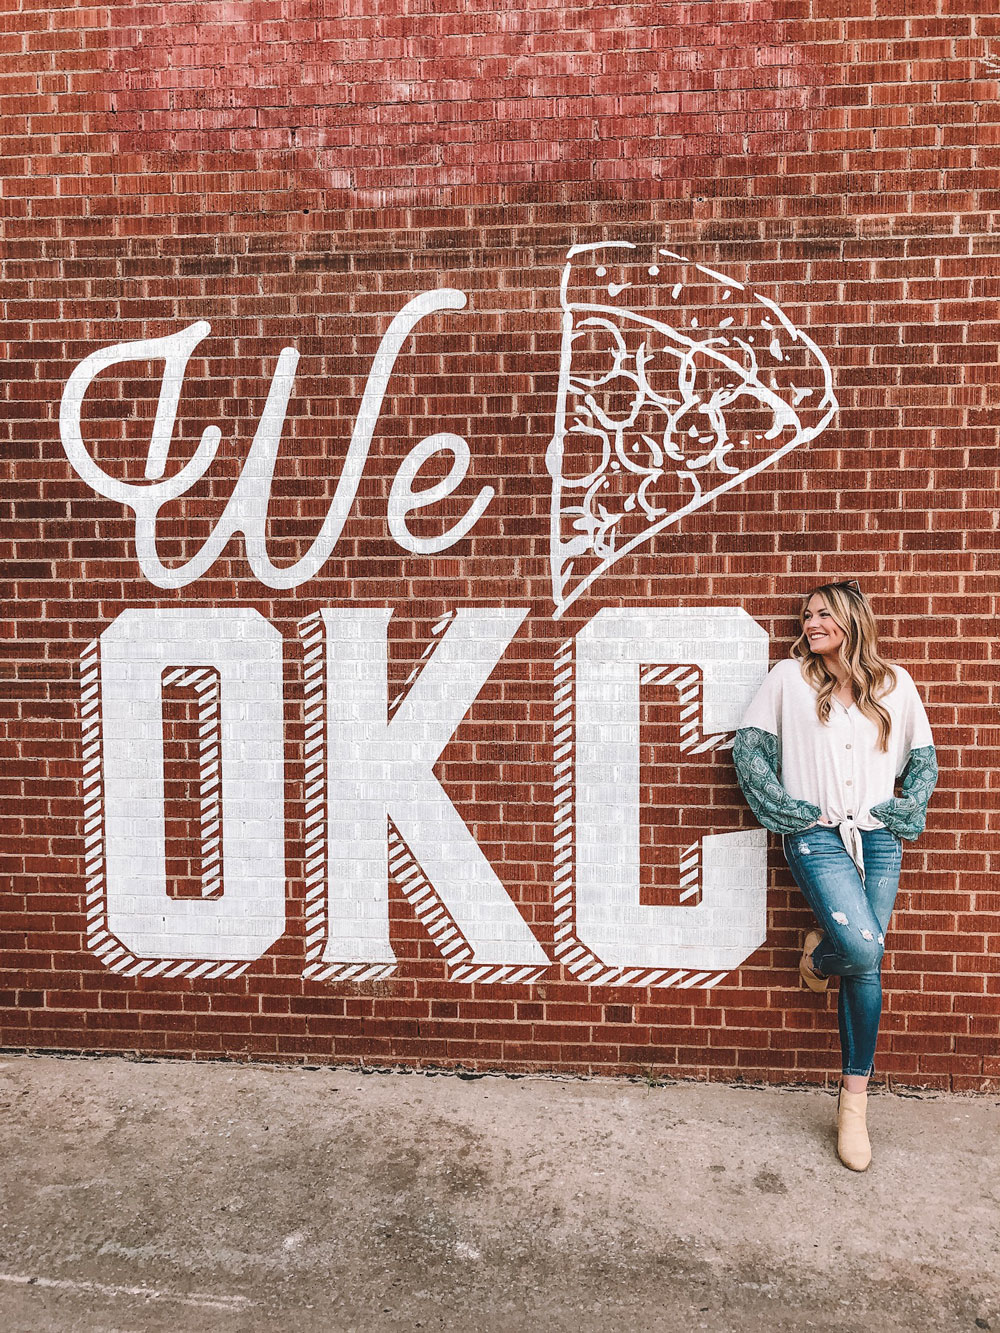 Where to eat in Midtown, Oklahoma City, according to Amanda Martin of Amanda's OK Blog